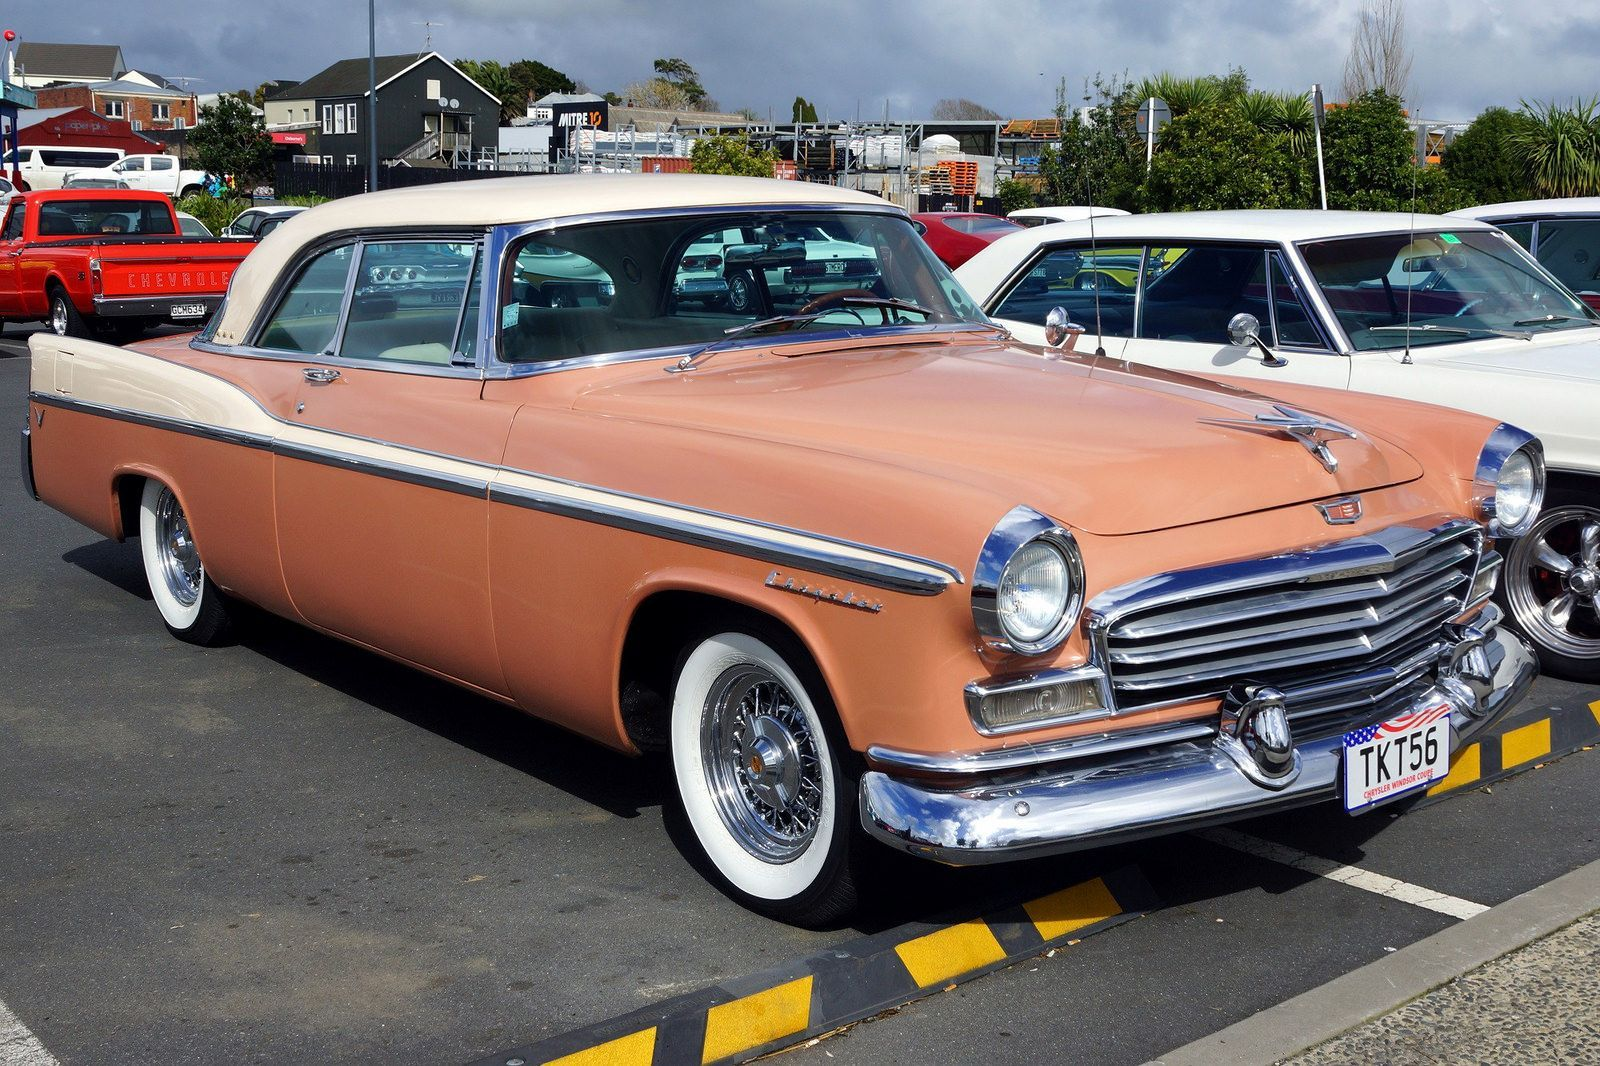 1956 Chrysler Windsor Coupe | Dodge charger, Cars and Vintage ...